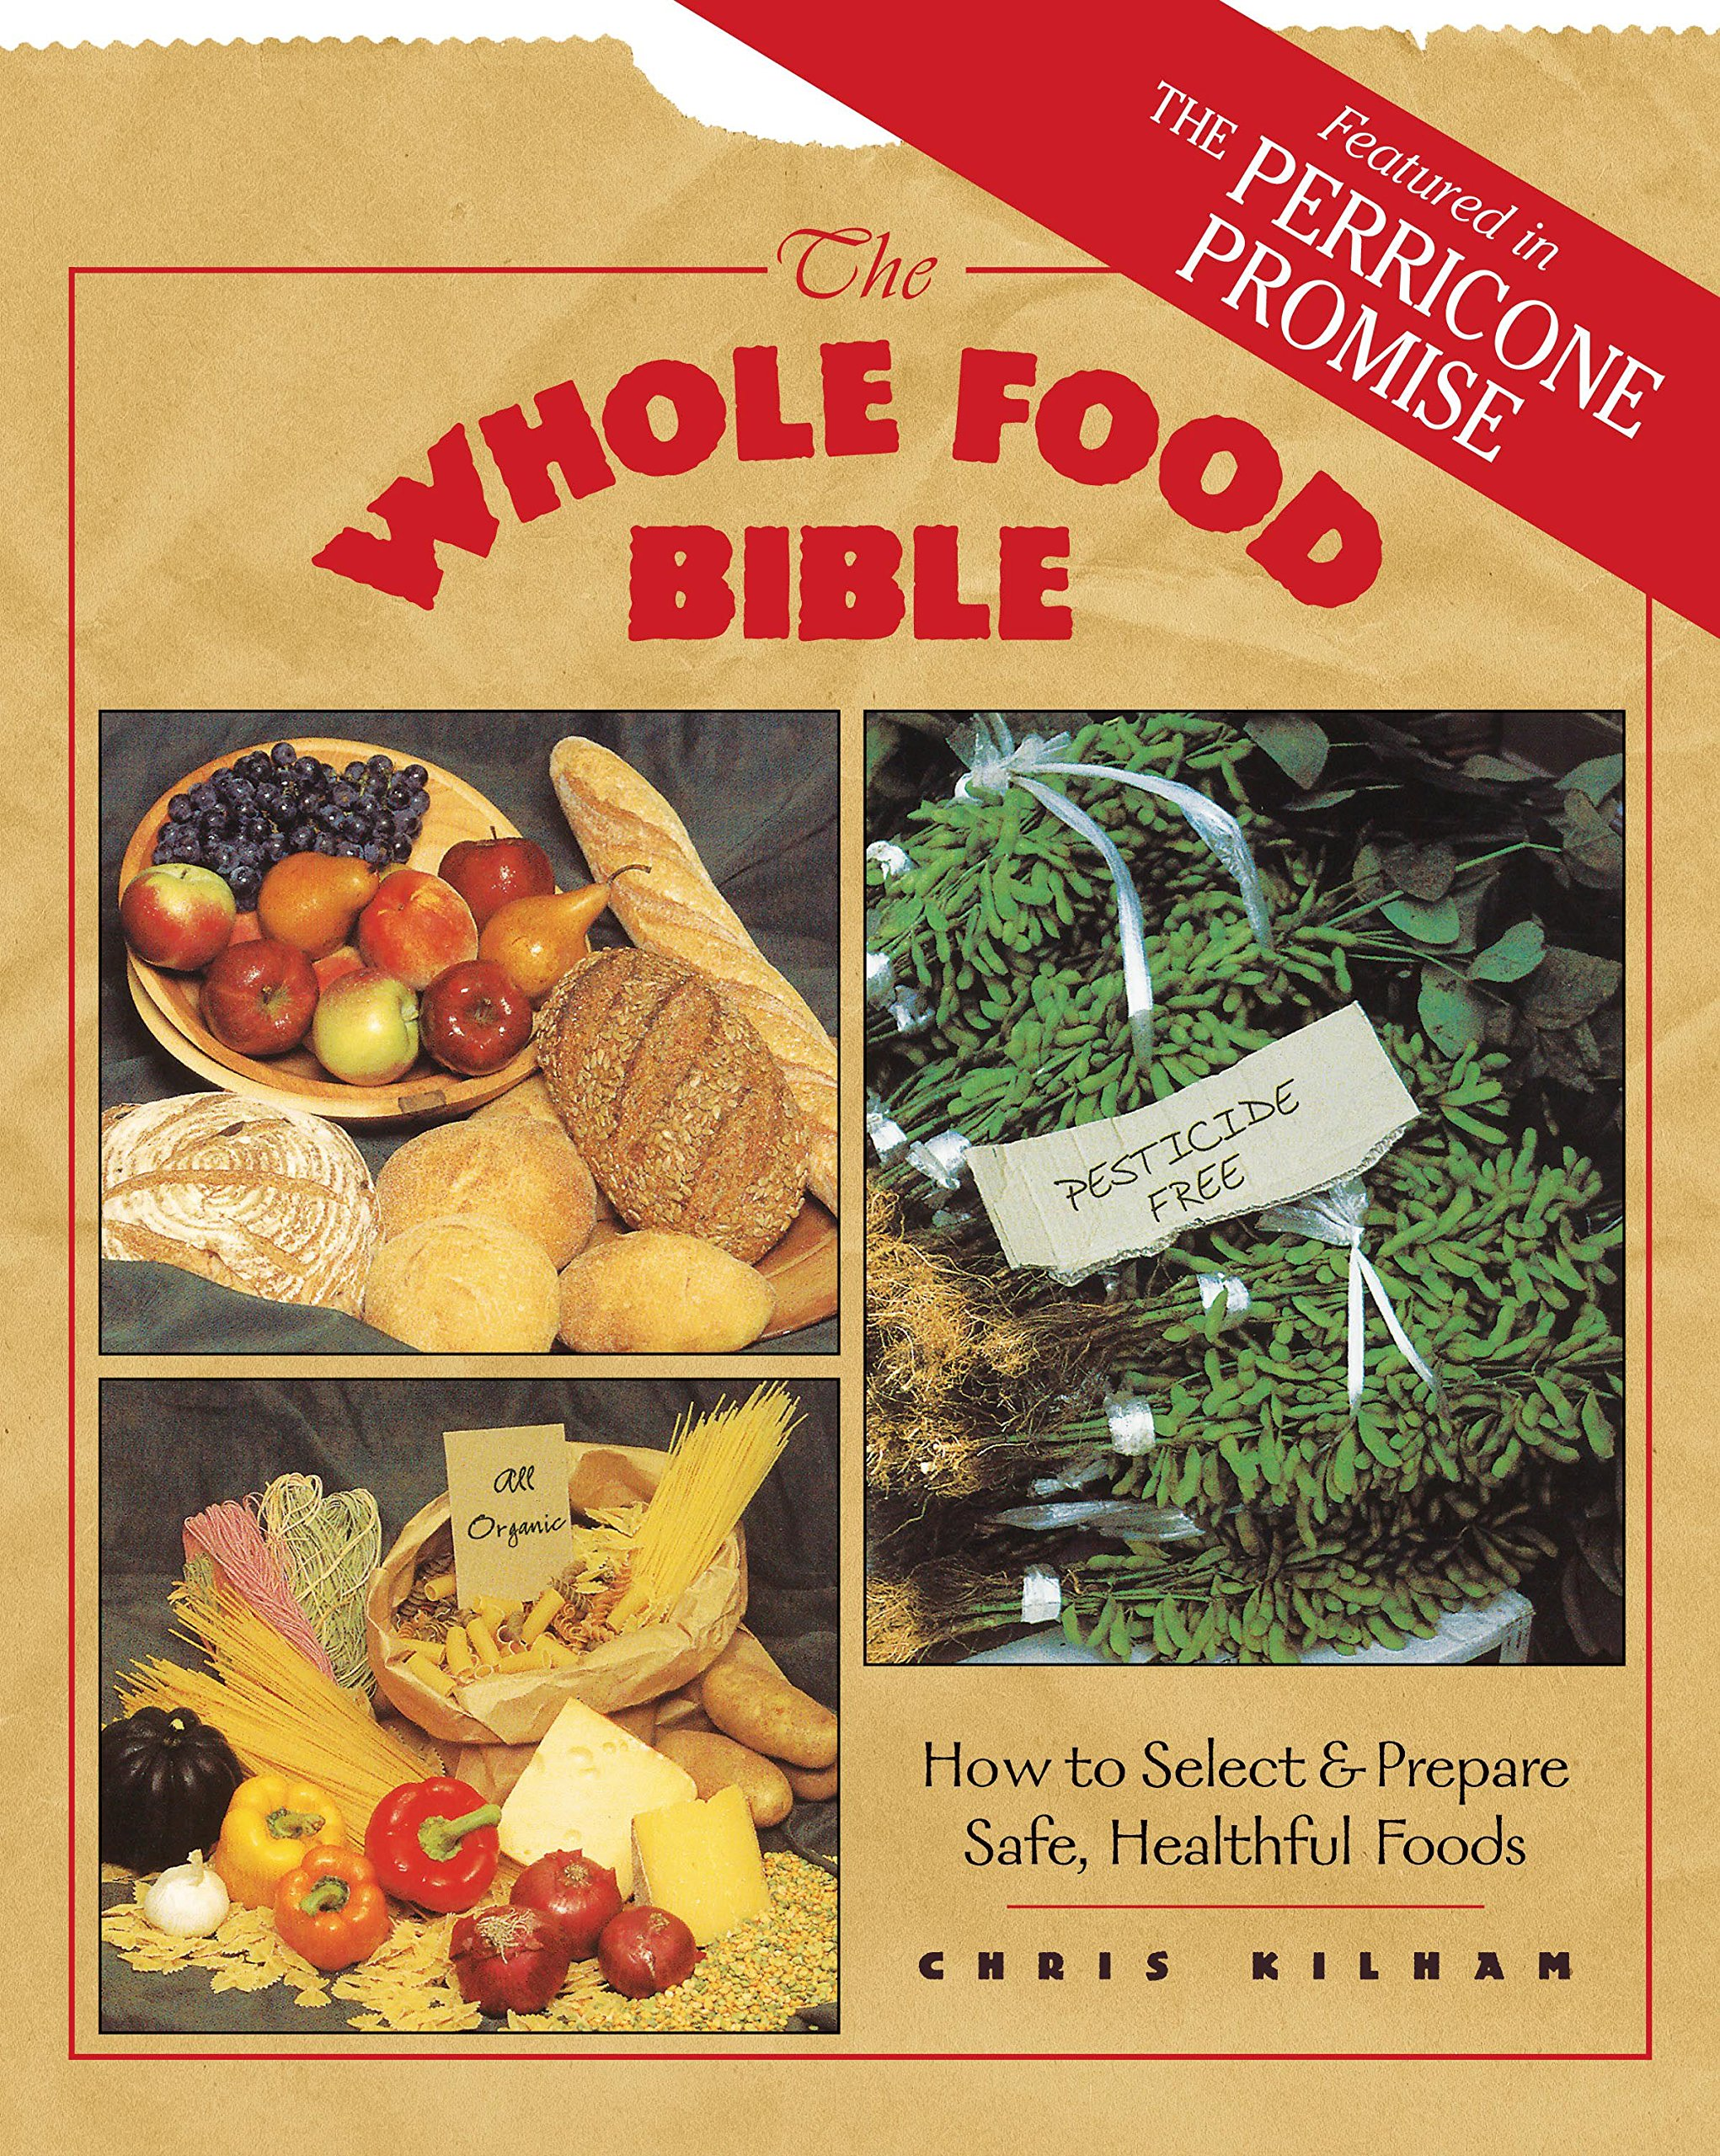 The whole food bible how to select prepare safe healthful foods the whole food bible how to select prepare safe healthful foods christopher s kilham 9780892816262 amazon books forumfinder Image collections